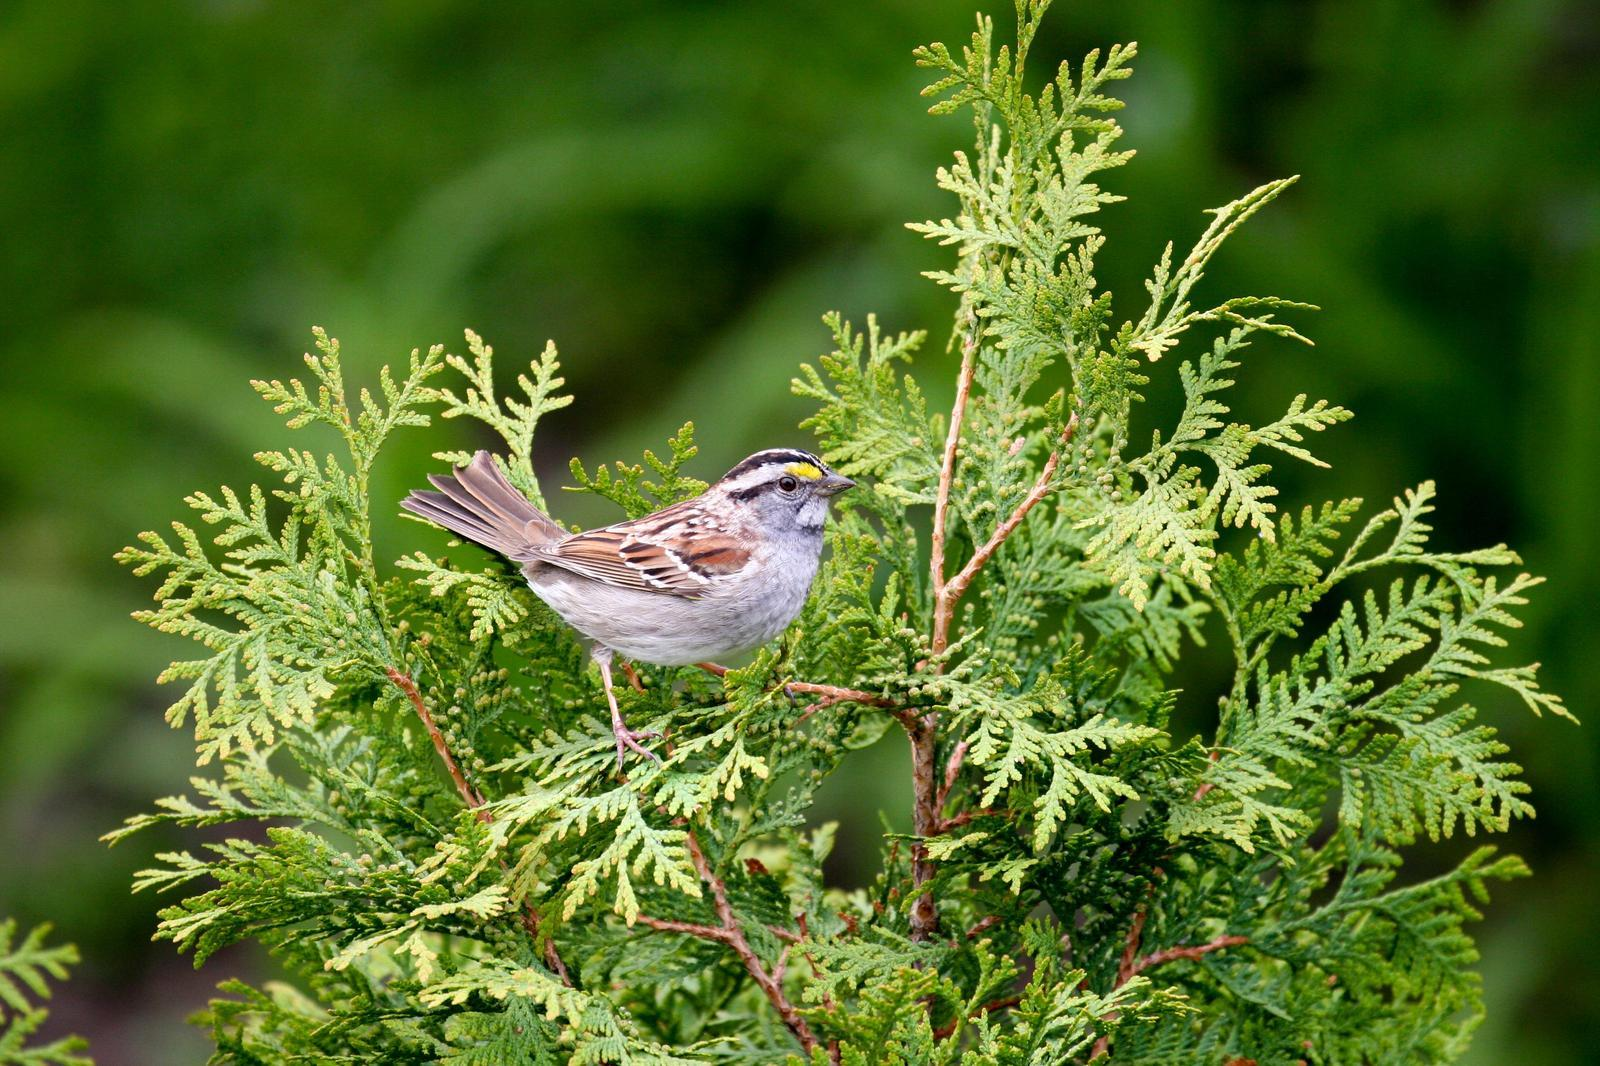 White-throated Sparrow Photo by Roseanne CALECA